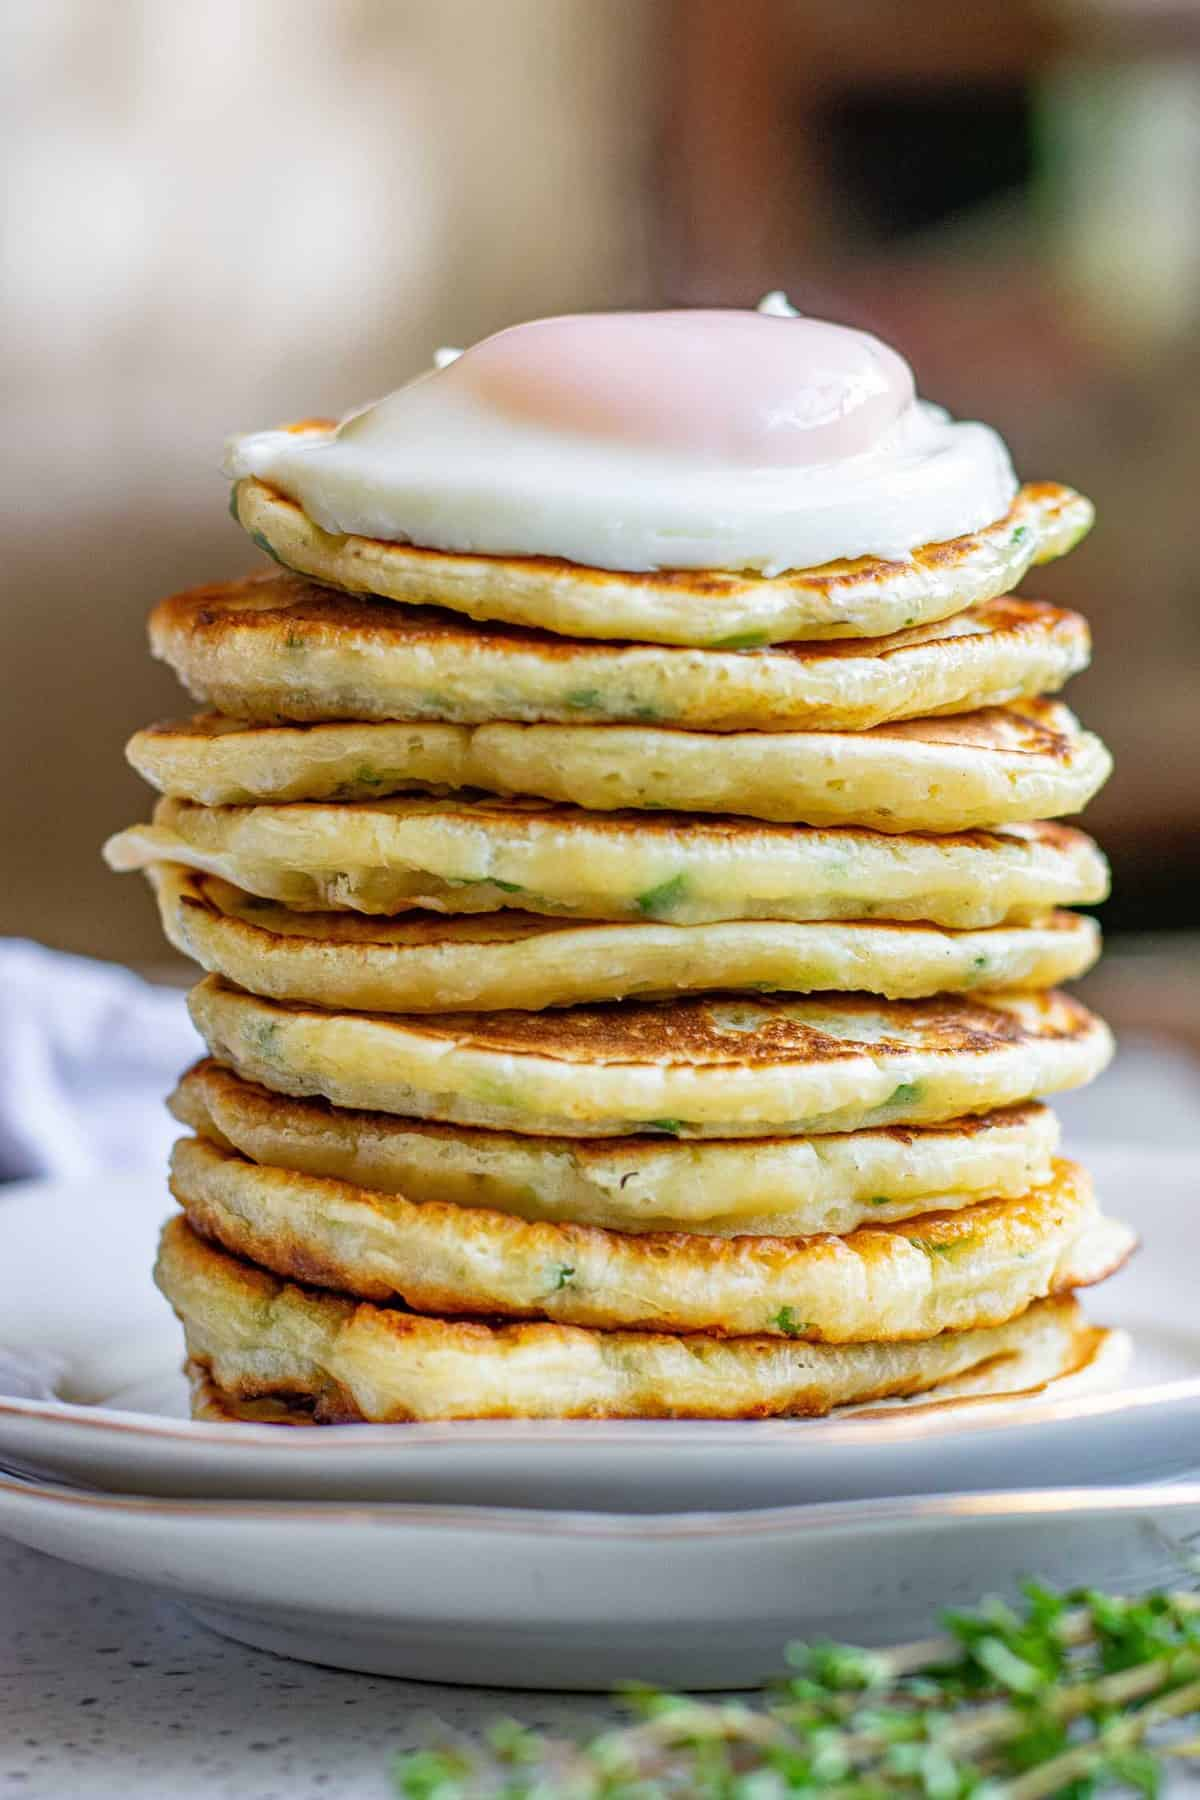 Very tall stack of pancakes topped with a perfect fried egg.